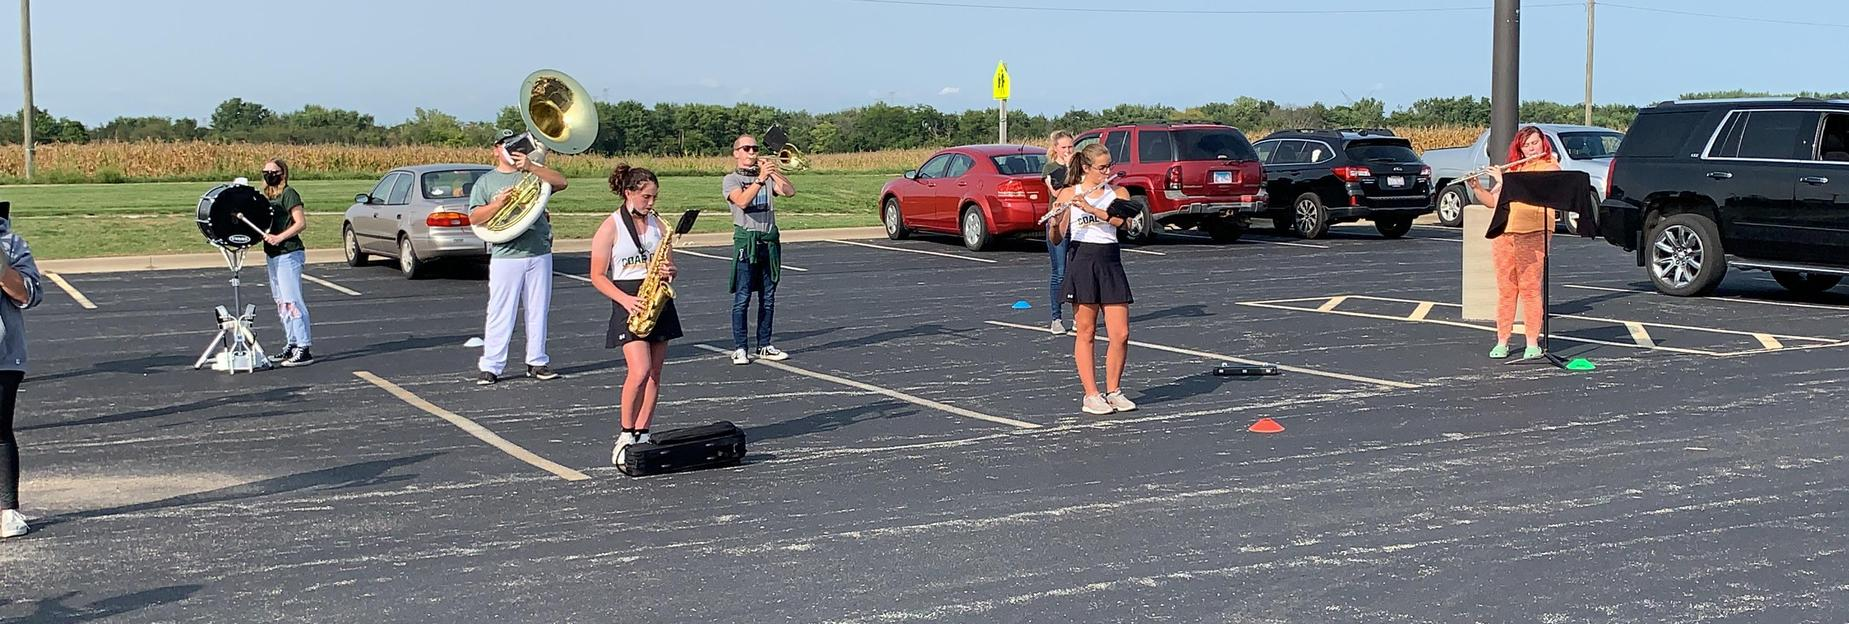 Marching band practicing in the parking lot